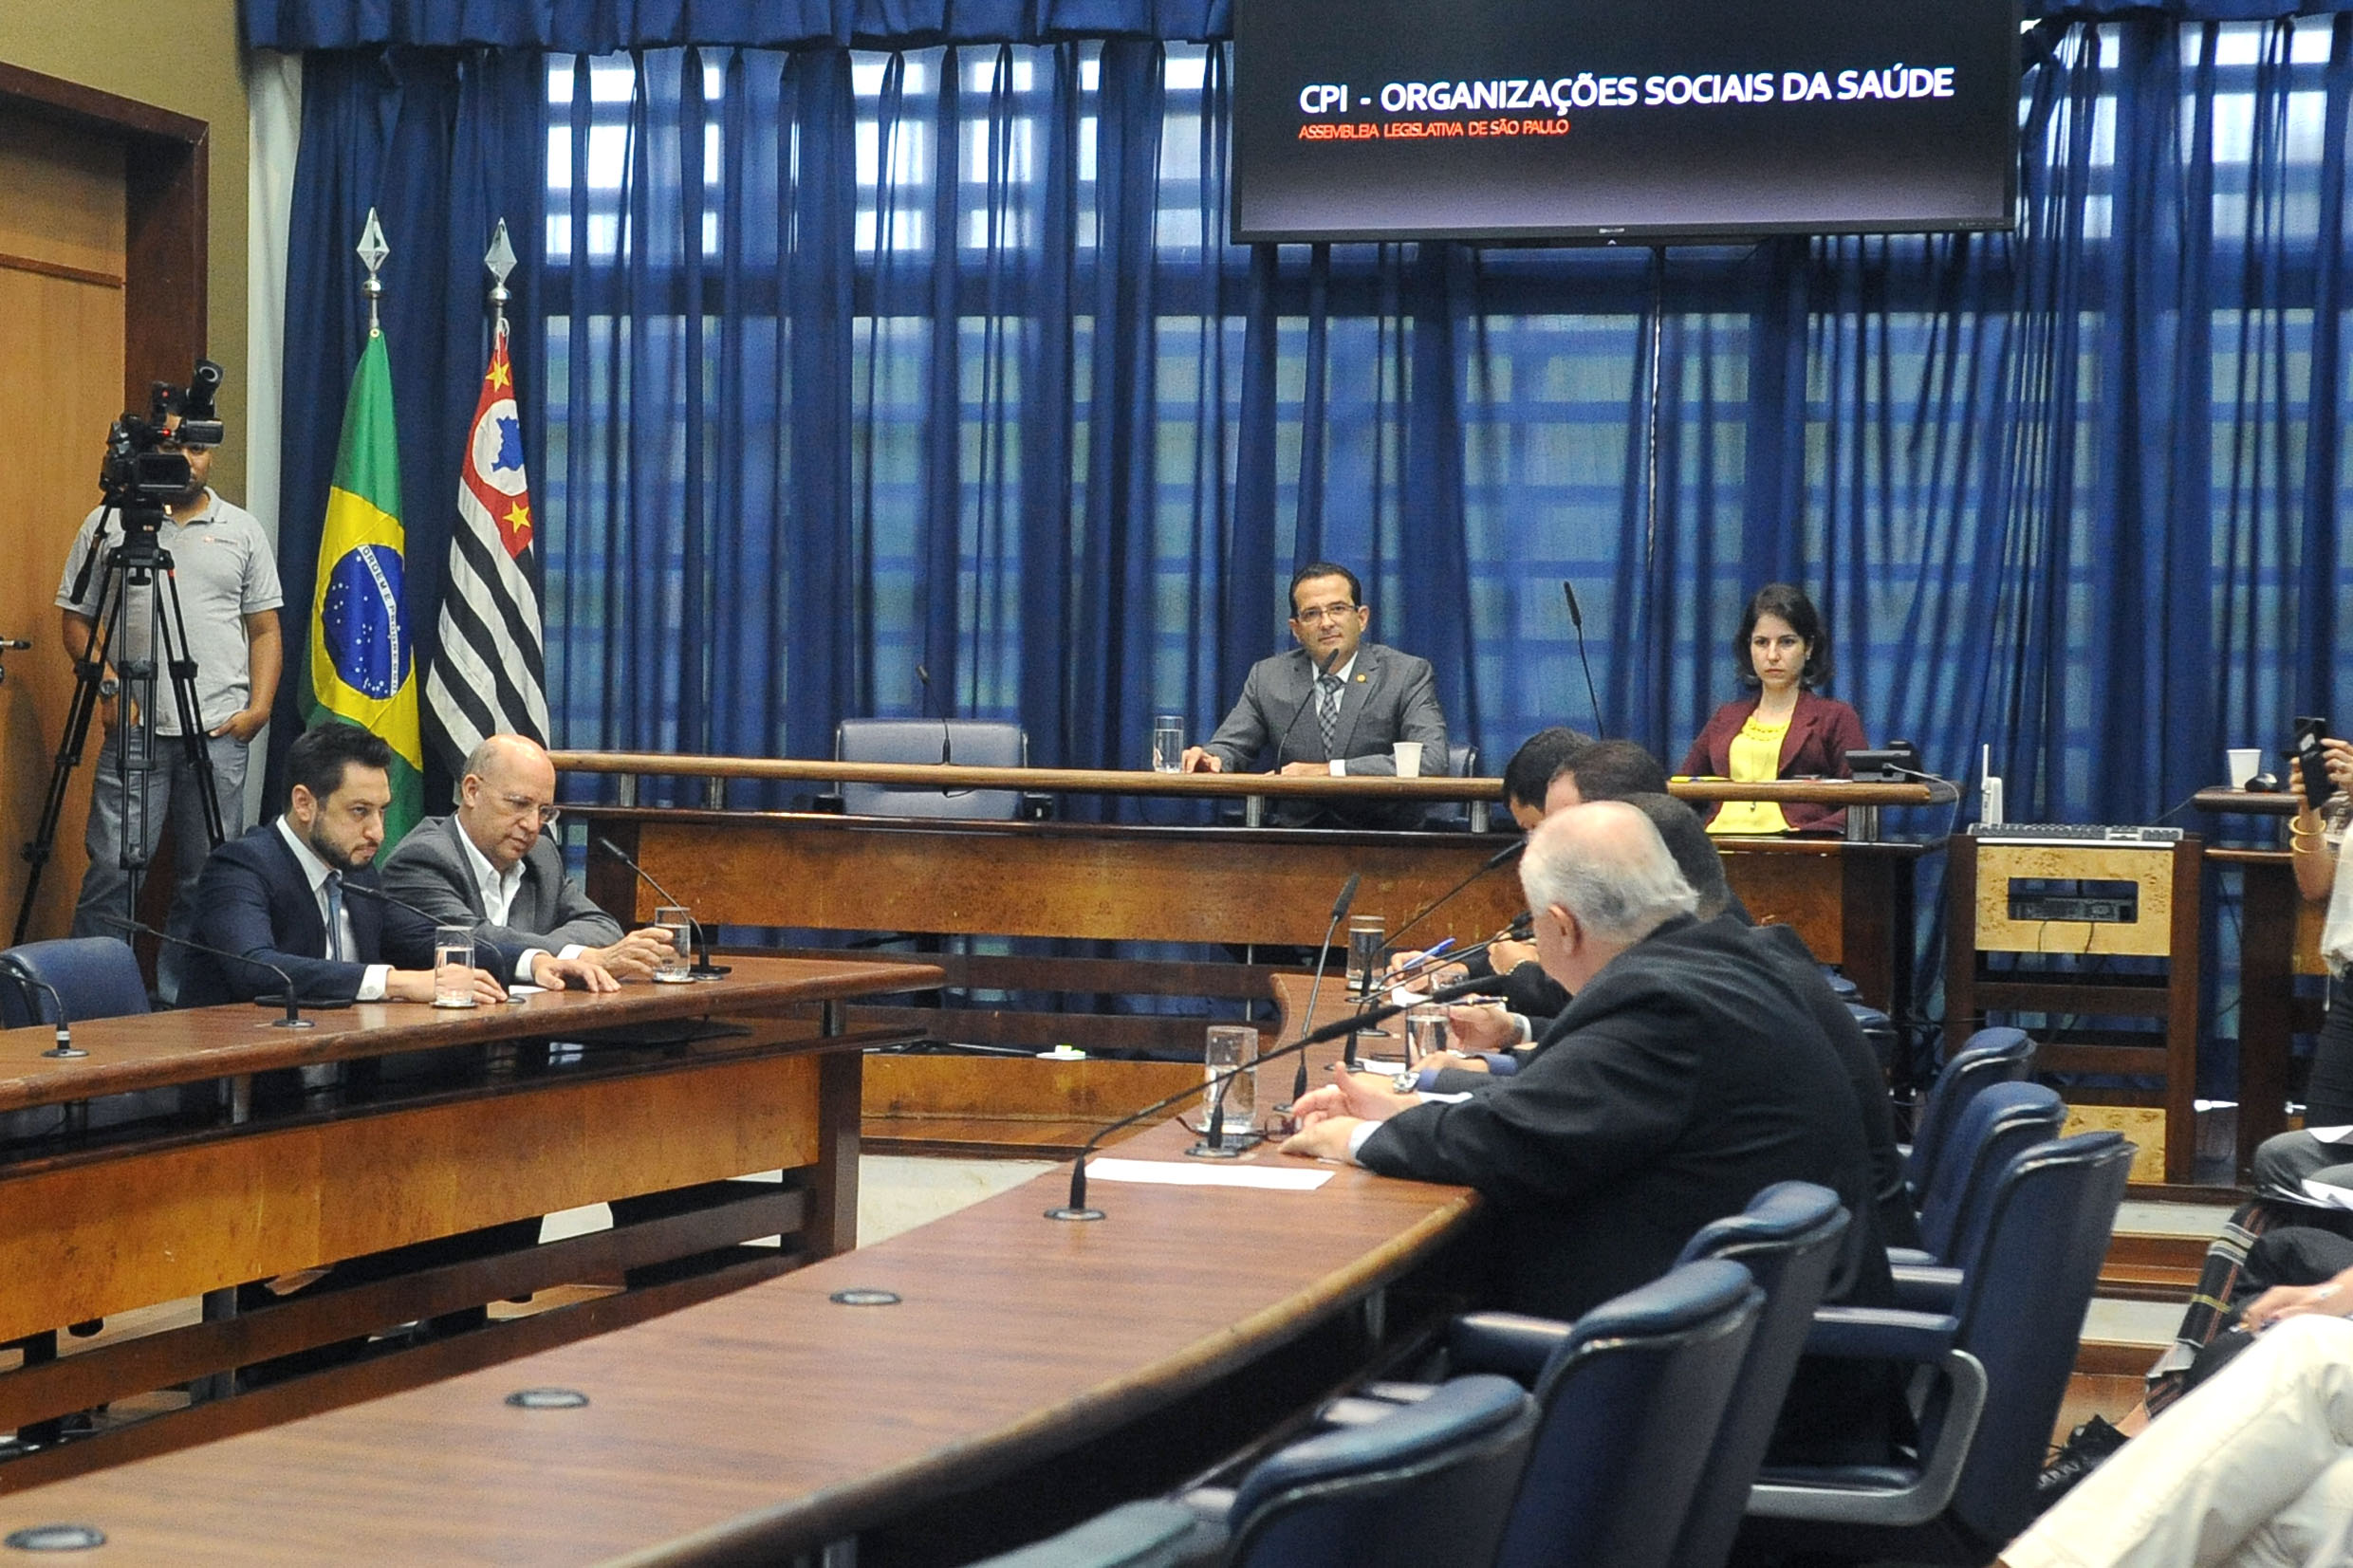 Parlamentares na CPI<a style='float:right' href='https://www3.al.sp.gov.br/repositorio/noticia/N-05-2018/fg222569.jpg' target=_blank><img src='/_img/material-file-download-white.png' width='14px' alt='Clique para baixar a imagem'></a>